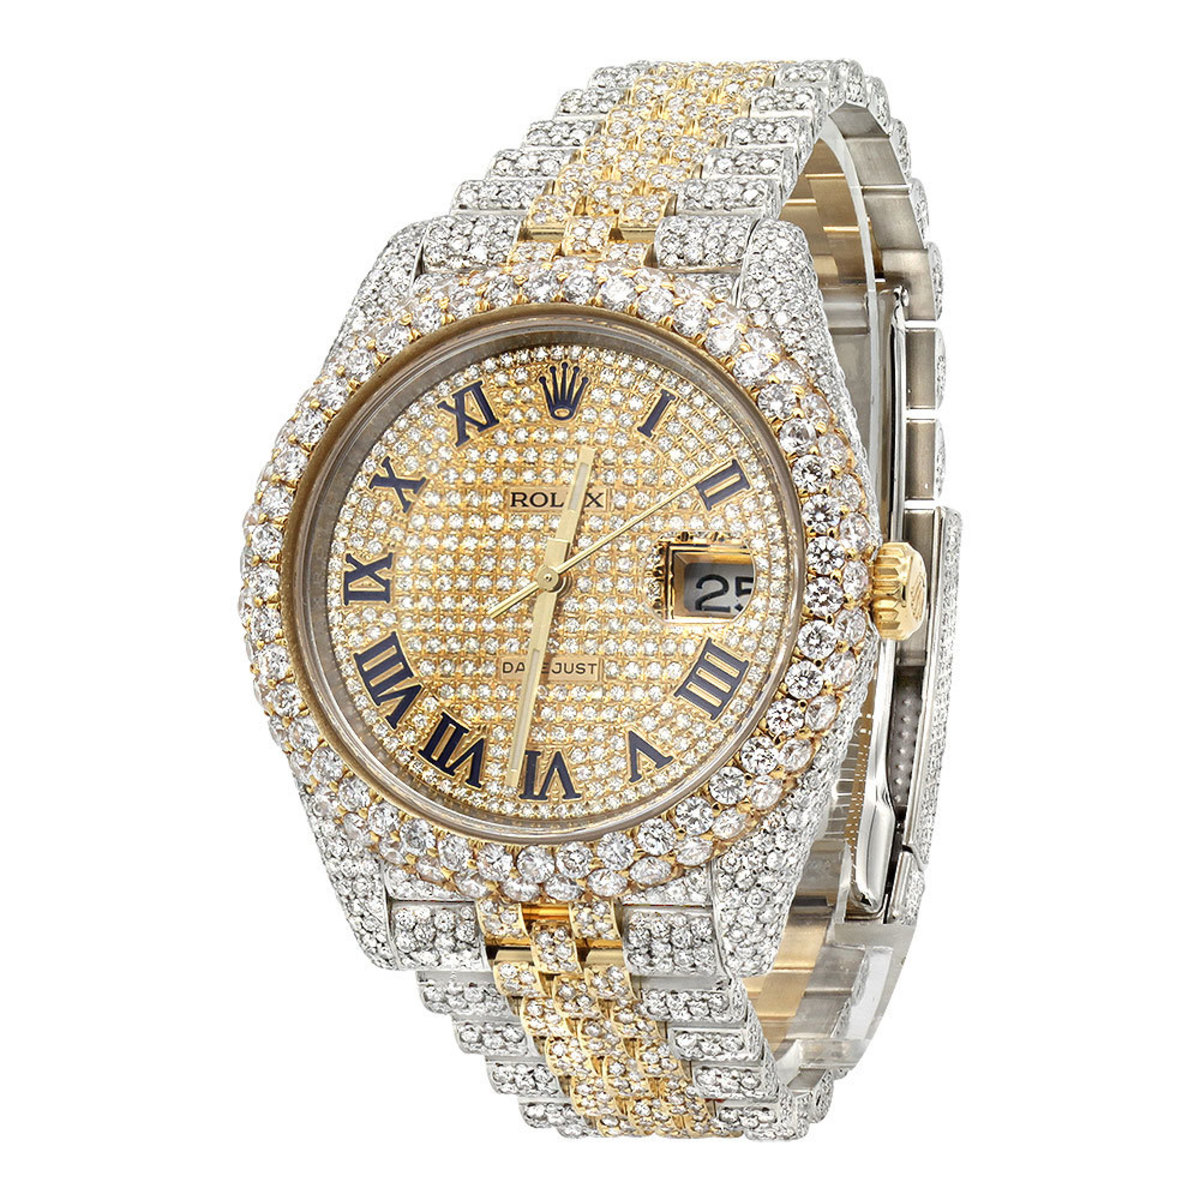 the-history-of-the-rolex-watch